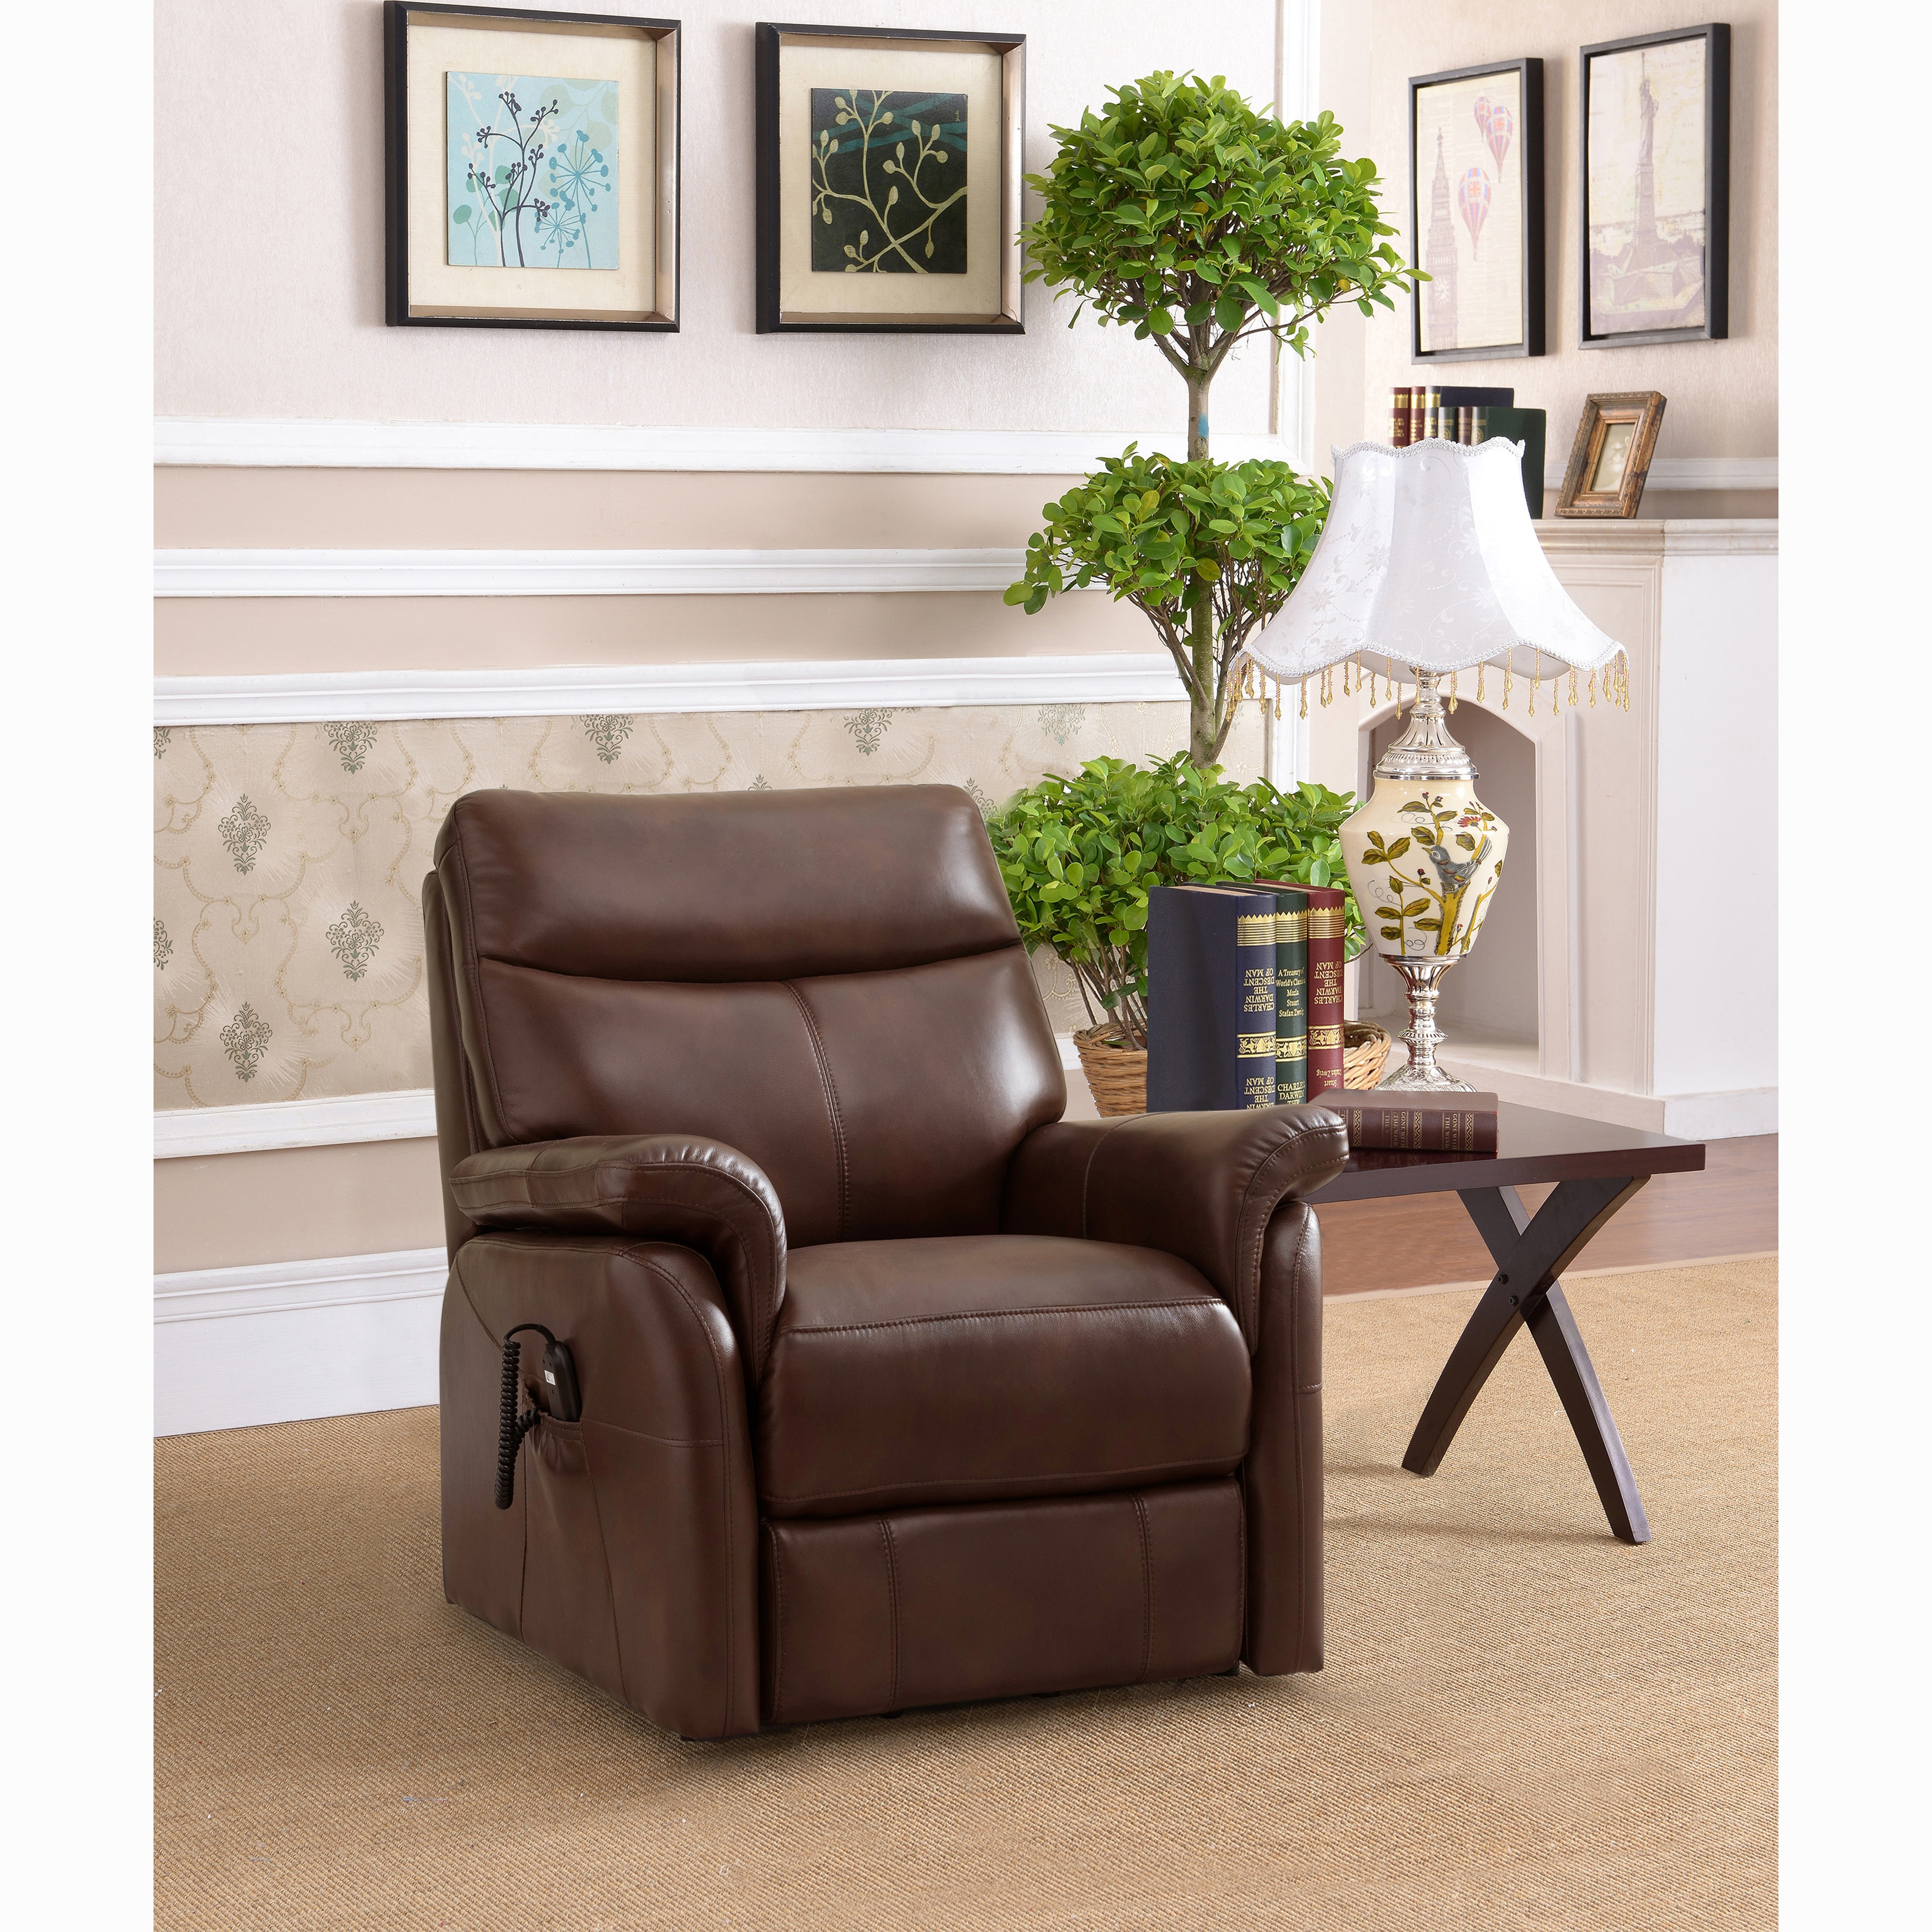 Awe Inspiring Ivy Brown Top Grain Leather Power Lift And Lay Flat Recliner Chair Caraccident5 Cool Chair Designs And Ideas Caraccident5Info